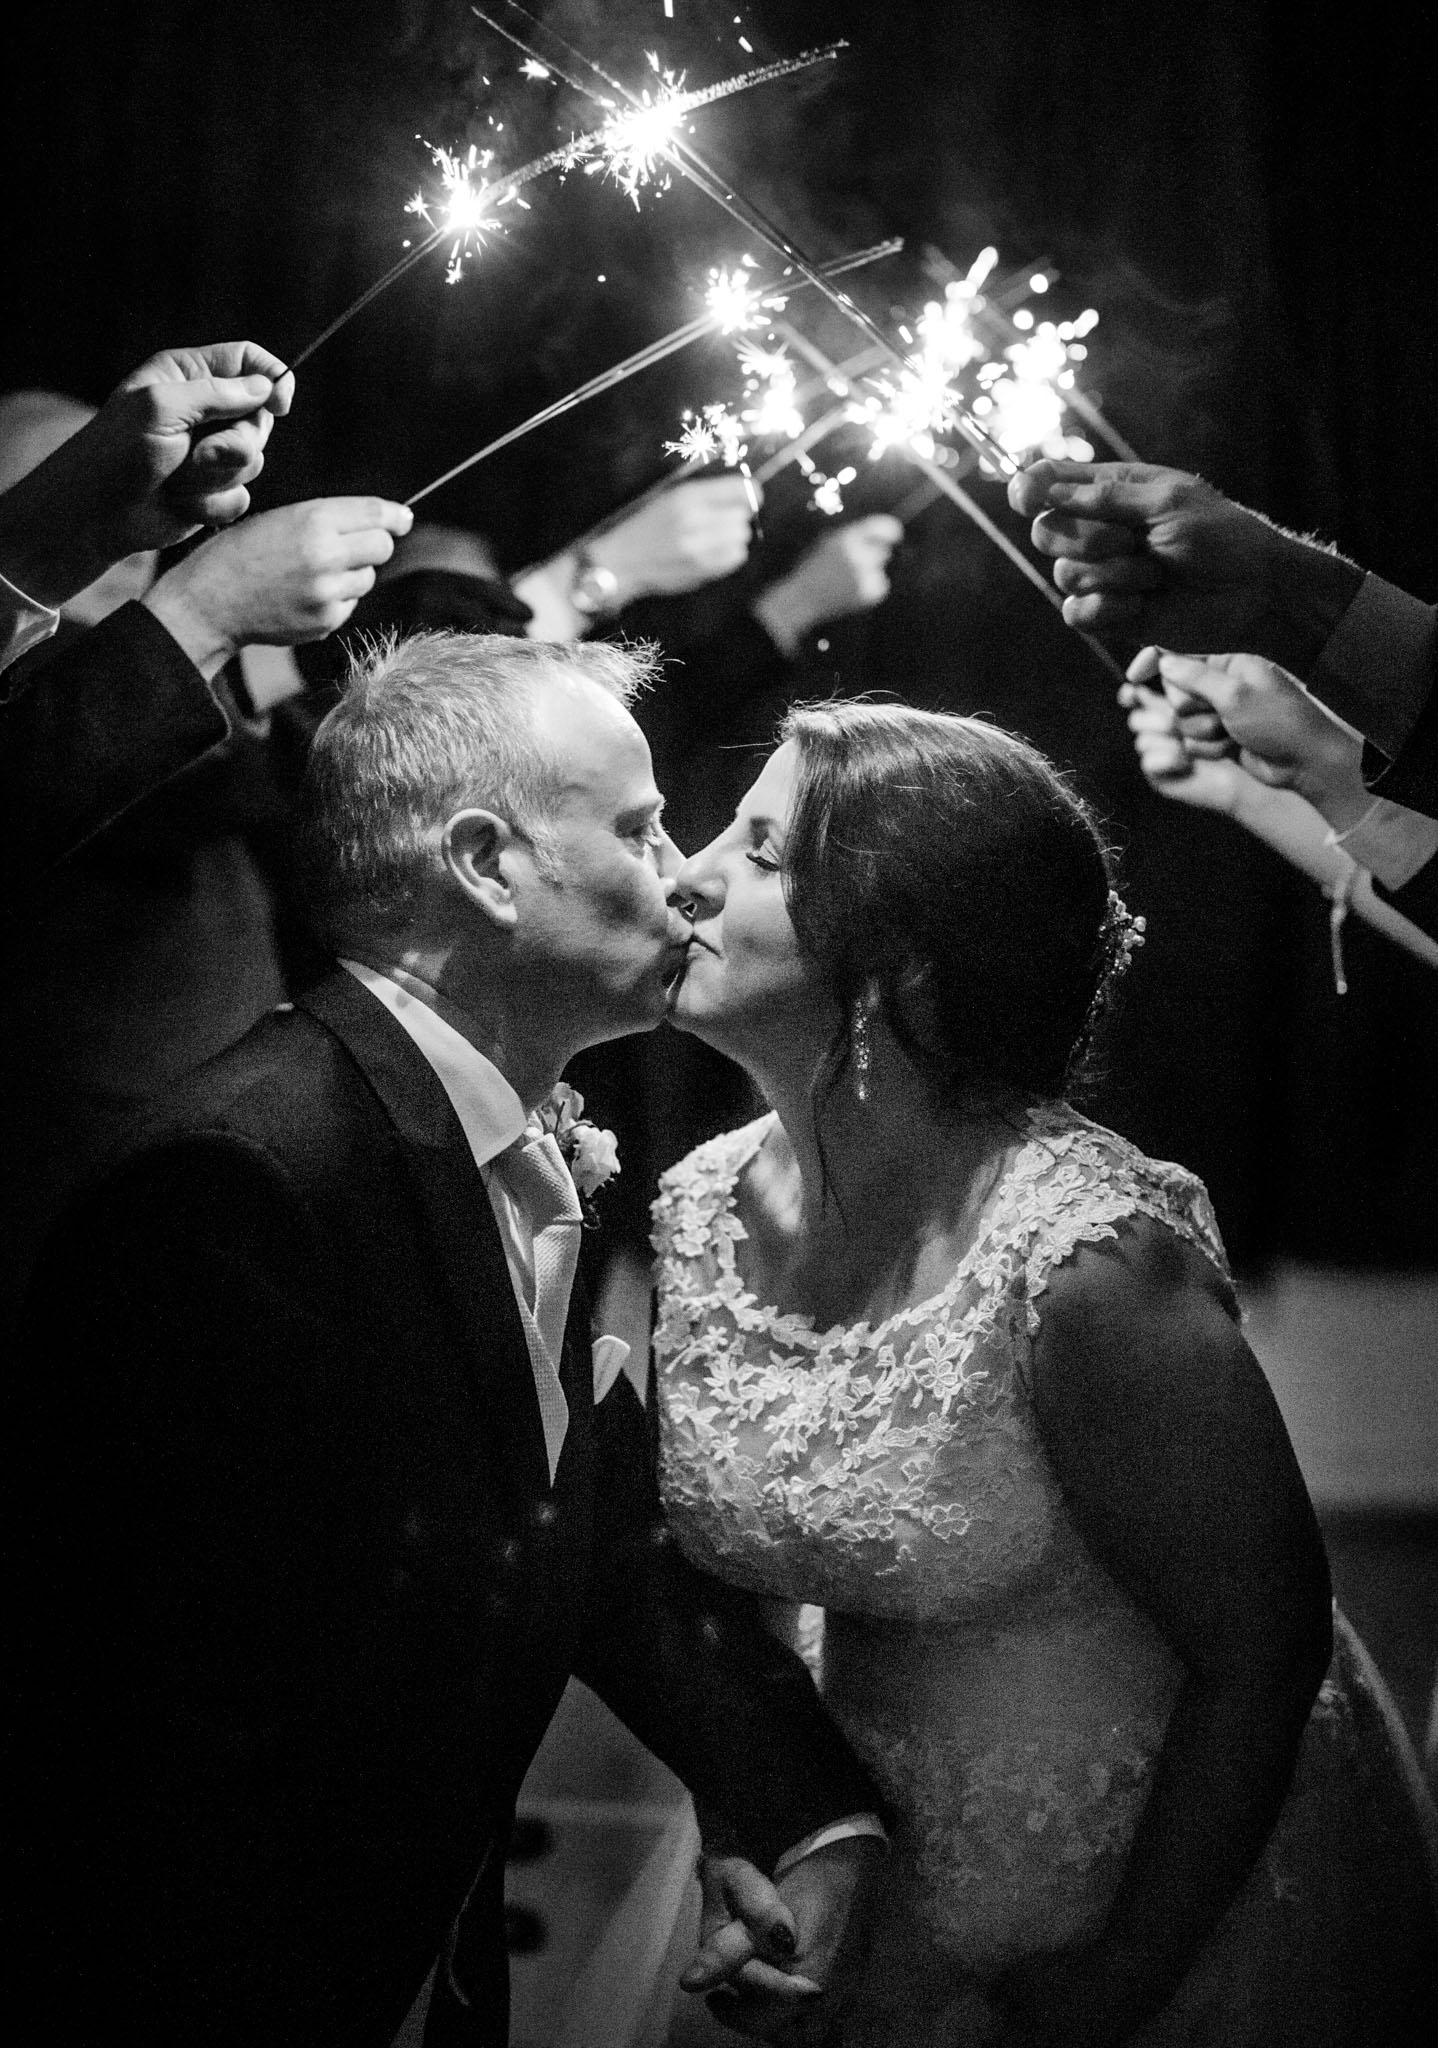 Wedding of Sarah & Gavin, Old Church Penallt, Tania Miller Photography, Monmouth Wedding Photographer